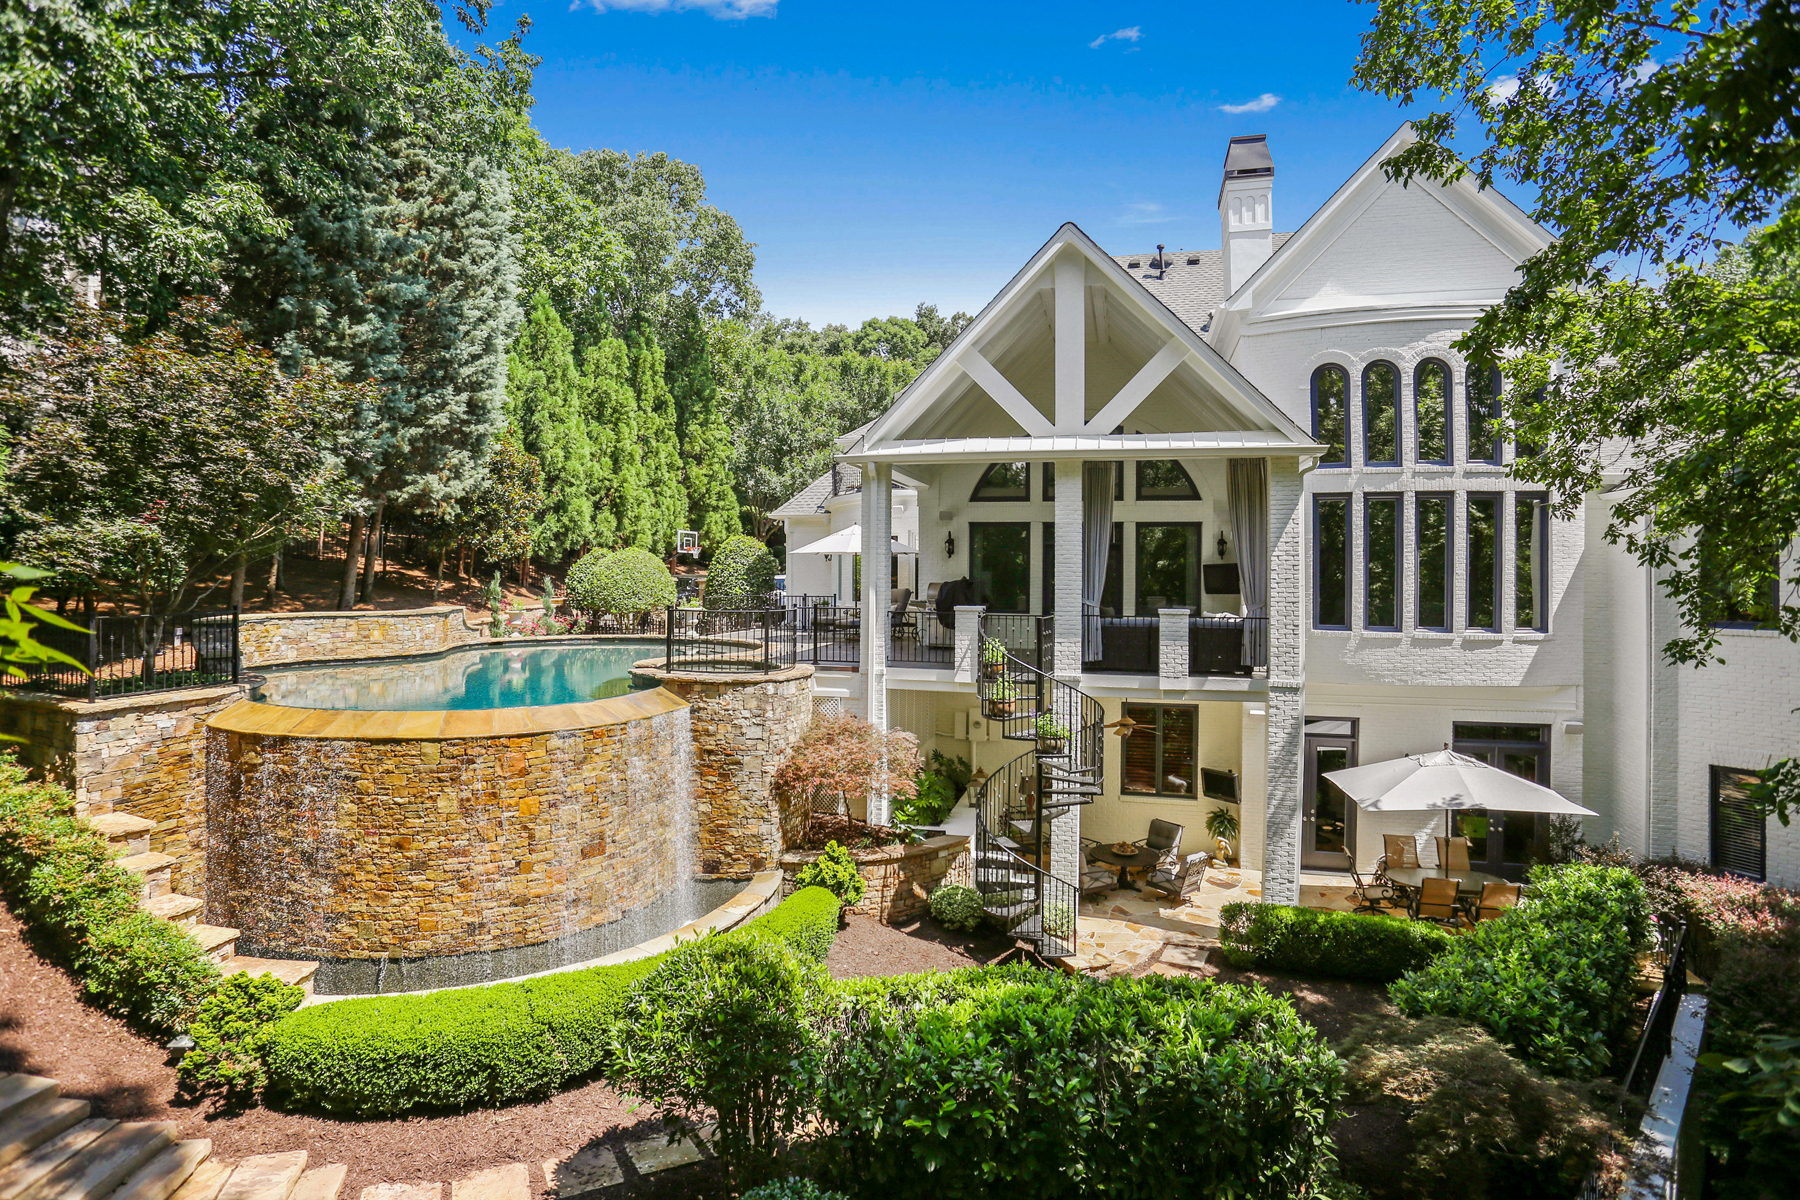 Single Family Home for Sale at Exceptional Better Than New Country Club Of The South Estate 8957 Old Southwick Pass Johns Creek, Georgia 30022 United States